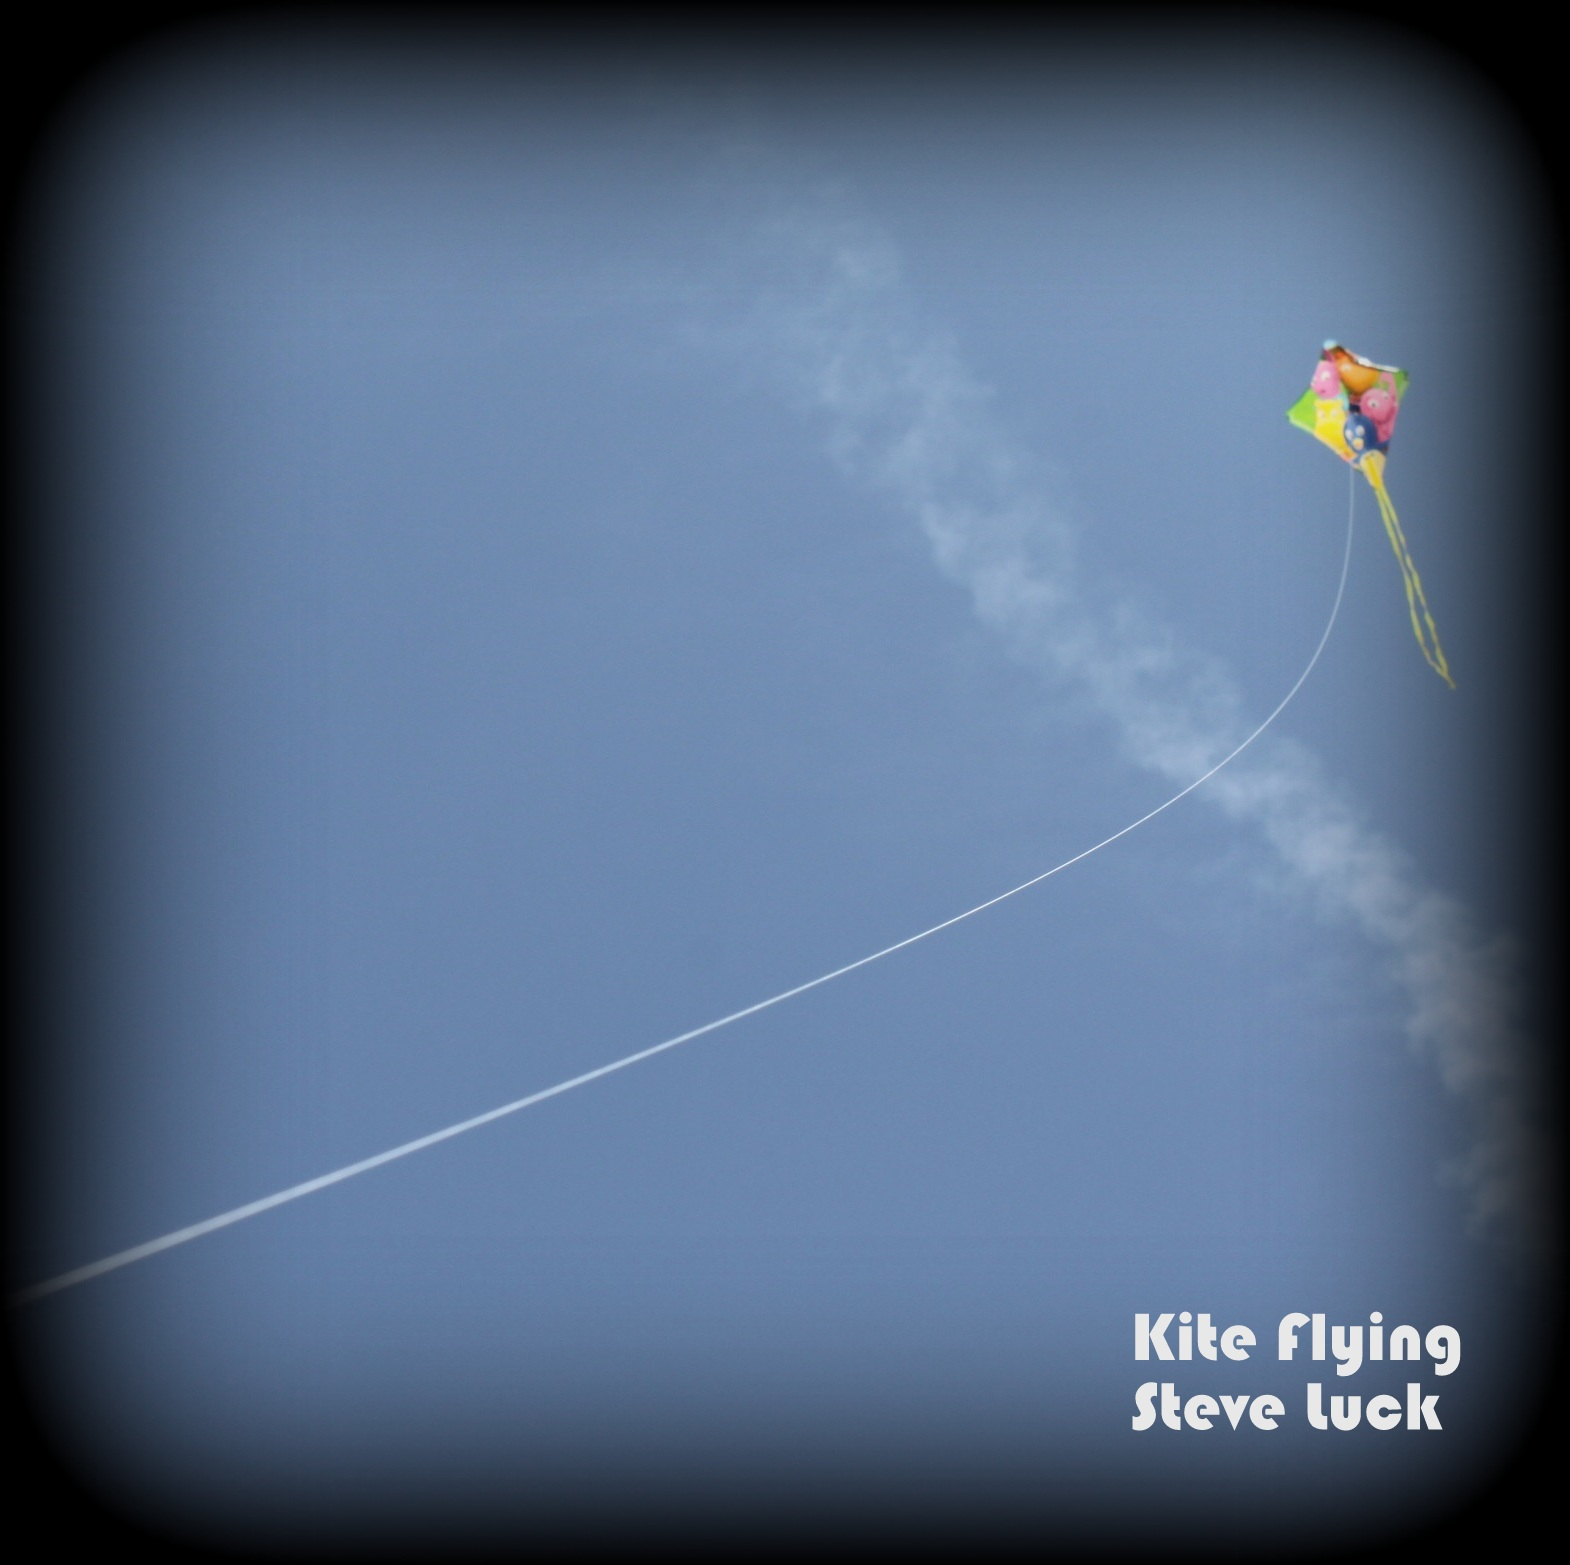 kite flying album cover